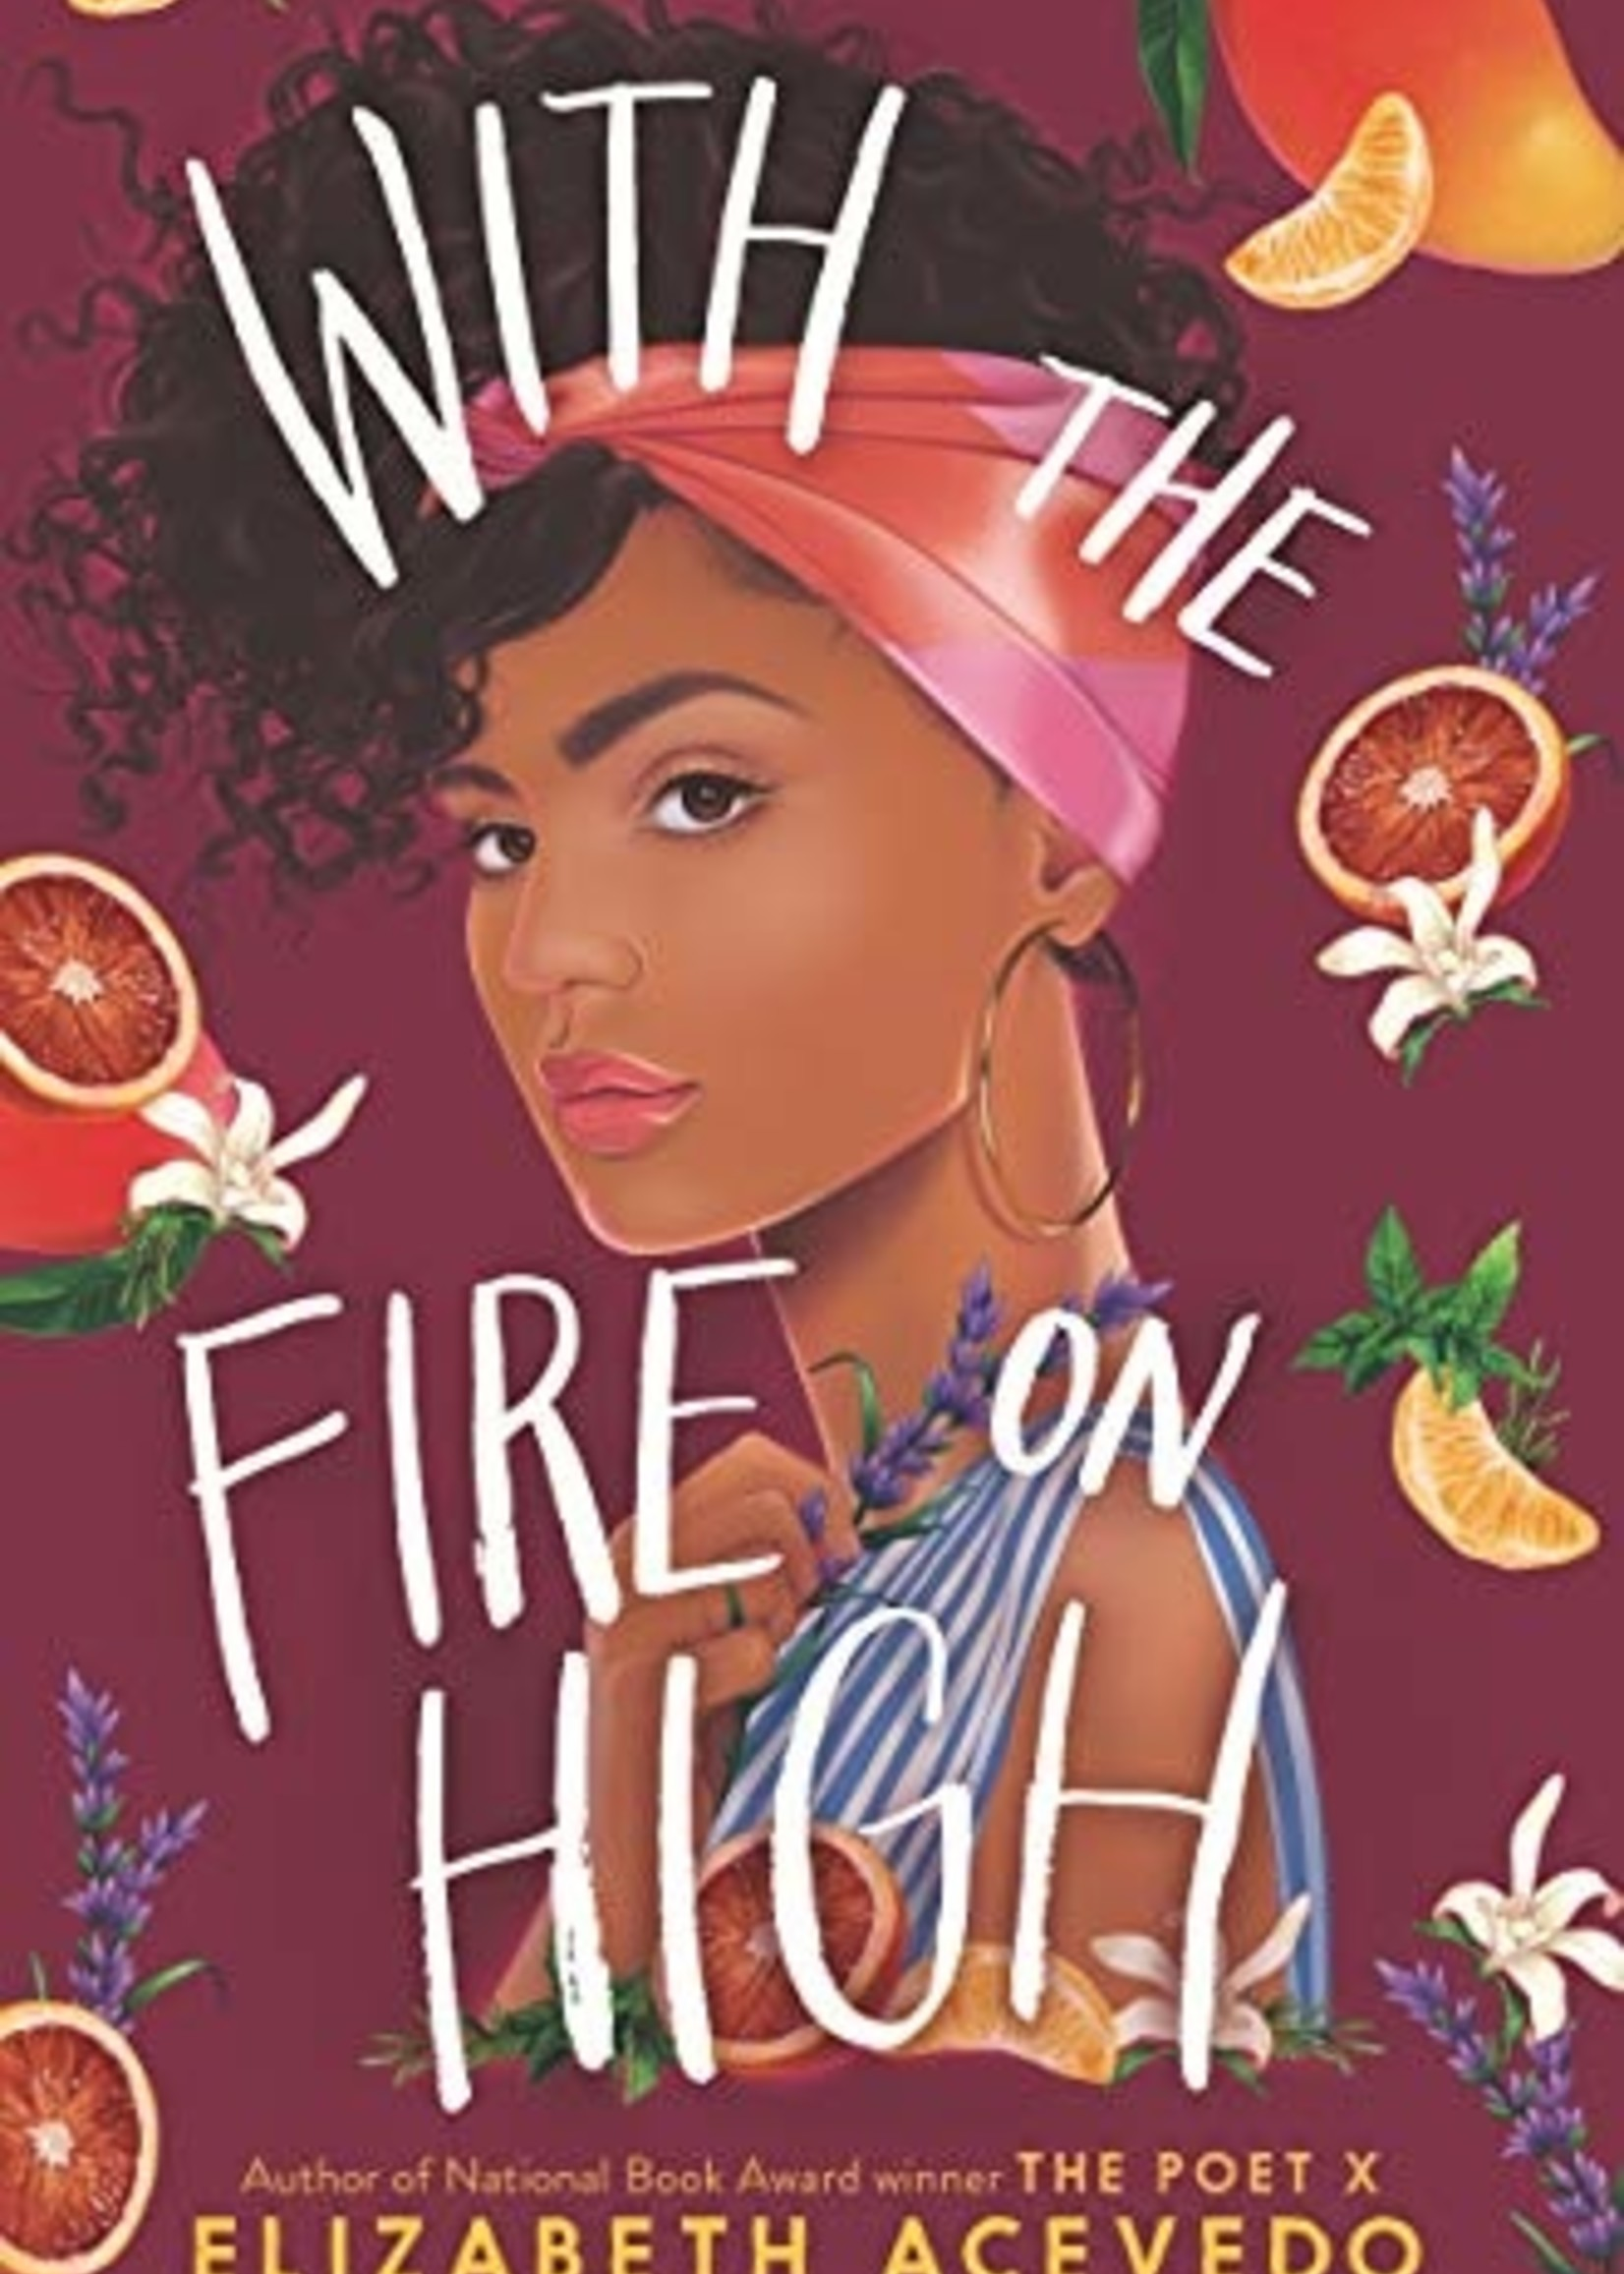 With the Fire on High - Hardcover